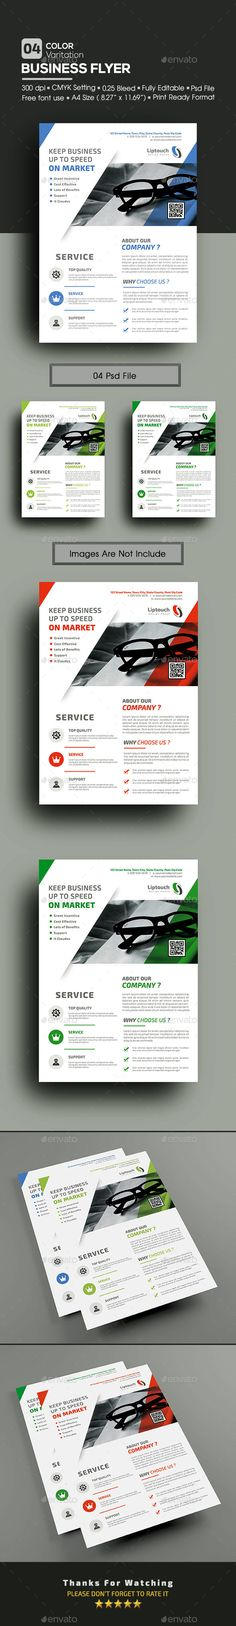 Elegant Business Flyer  Business Flyers Psd Templates And Business